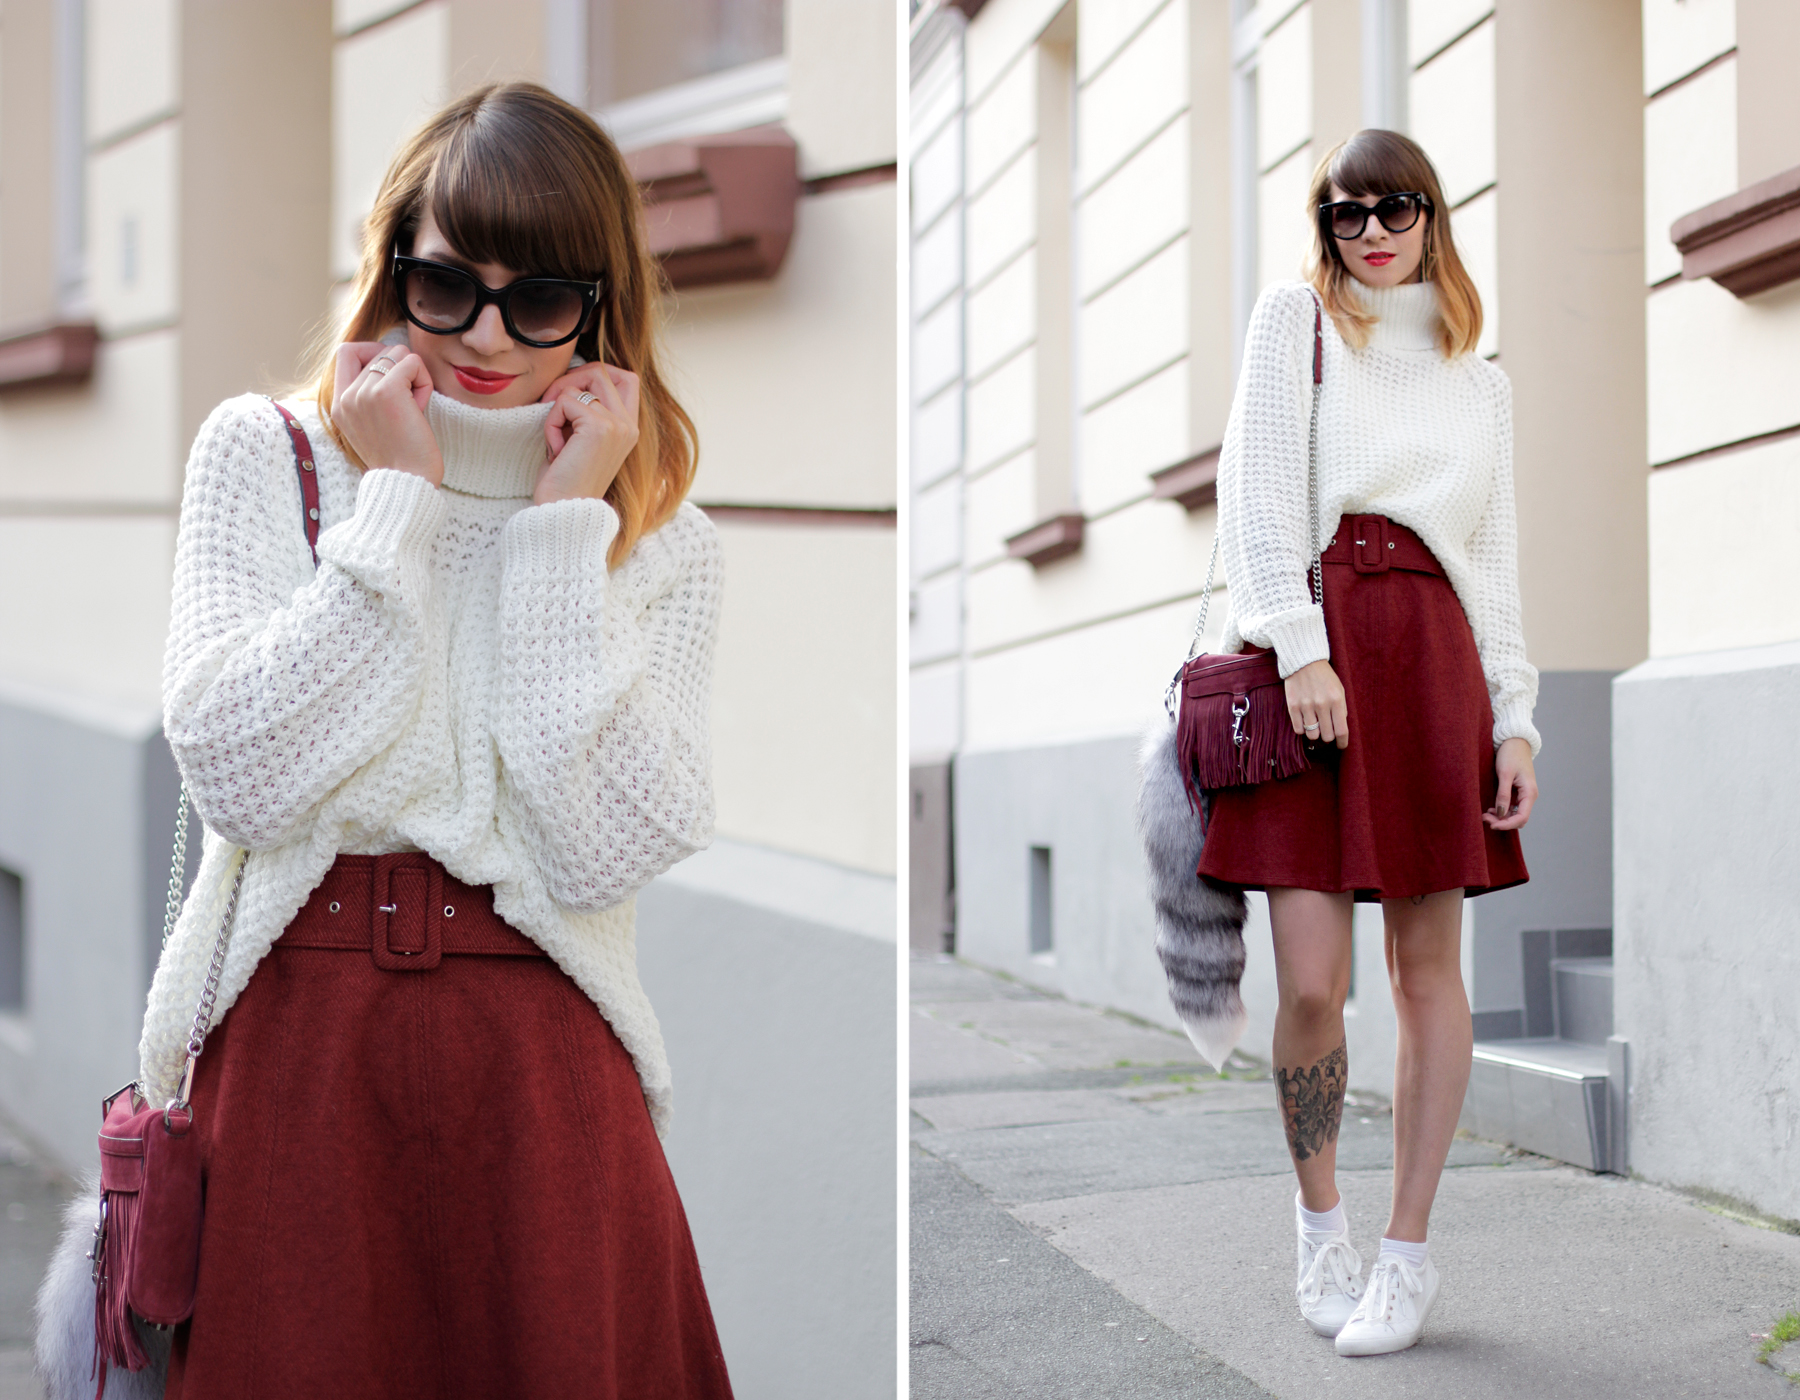 edited the label red burgundy a line skirt seventies soft white knit rebecca minkoff wine bag cross body cats & dogs fashionblogger ricarda schernus blog berlin hannover düsseldorf 1